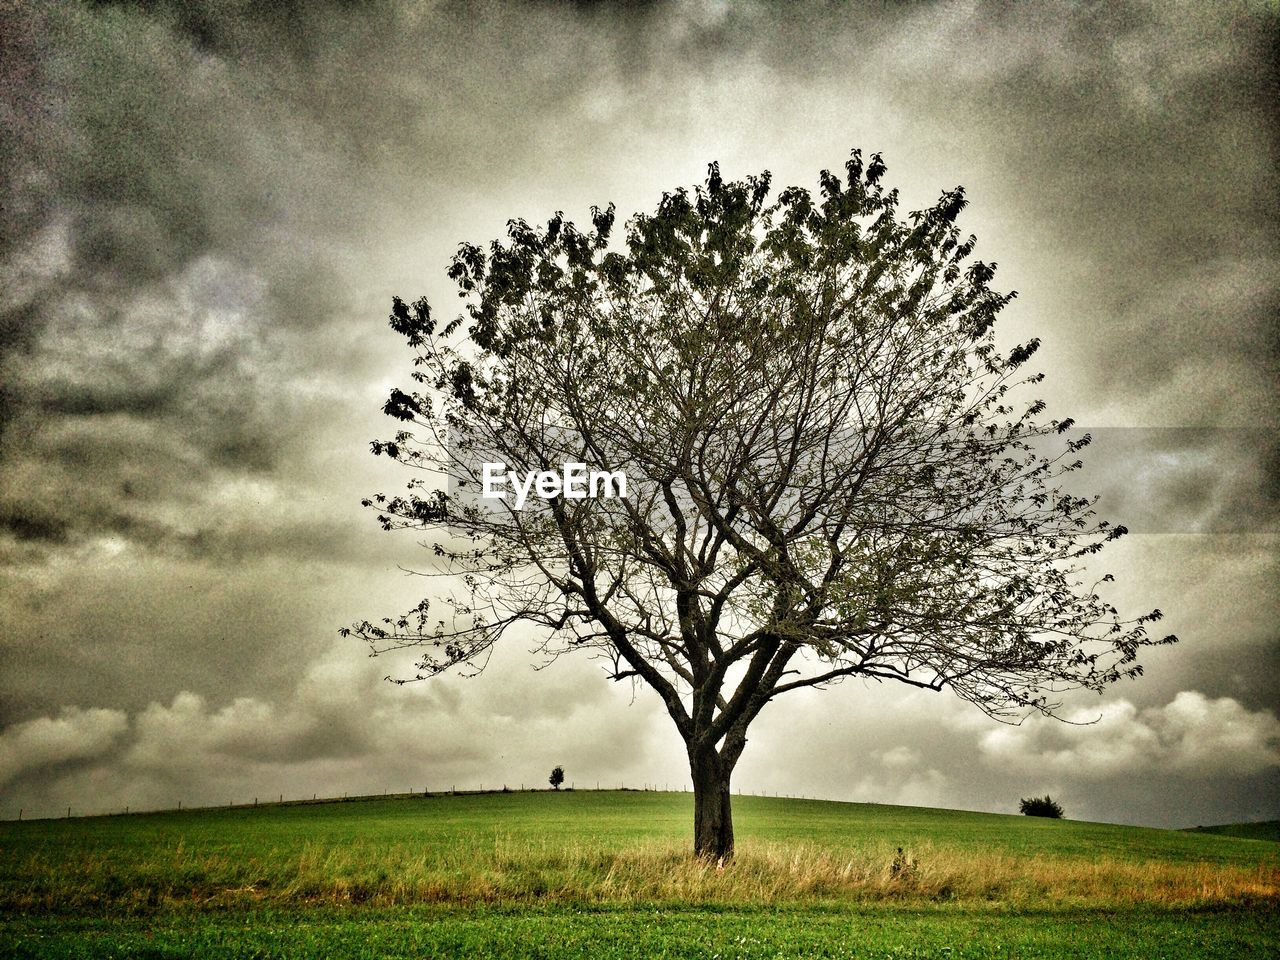 lone, tree, field, landscape, sky, isolated, solitude, beauty in nature, nature, tranquility, horizon over land, grass, branch, outdoors, scenics, bare tree, day, no people